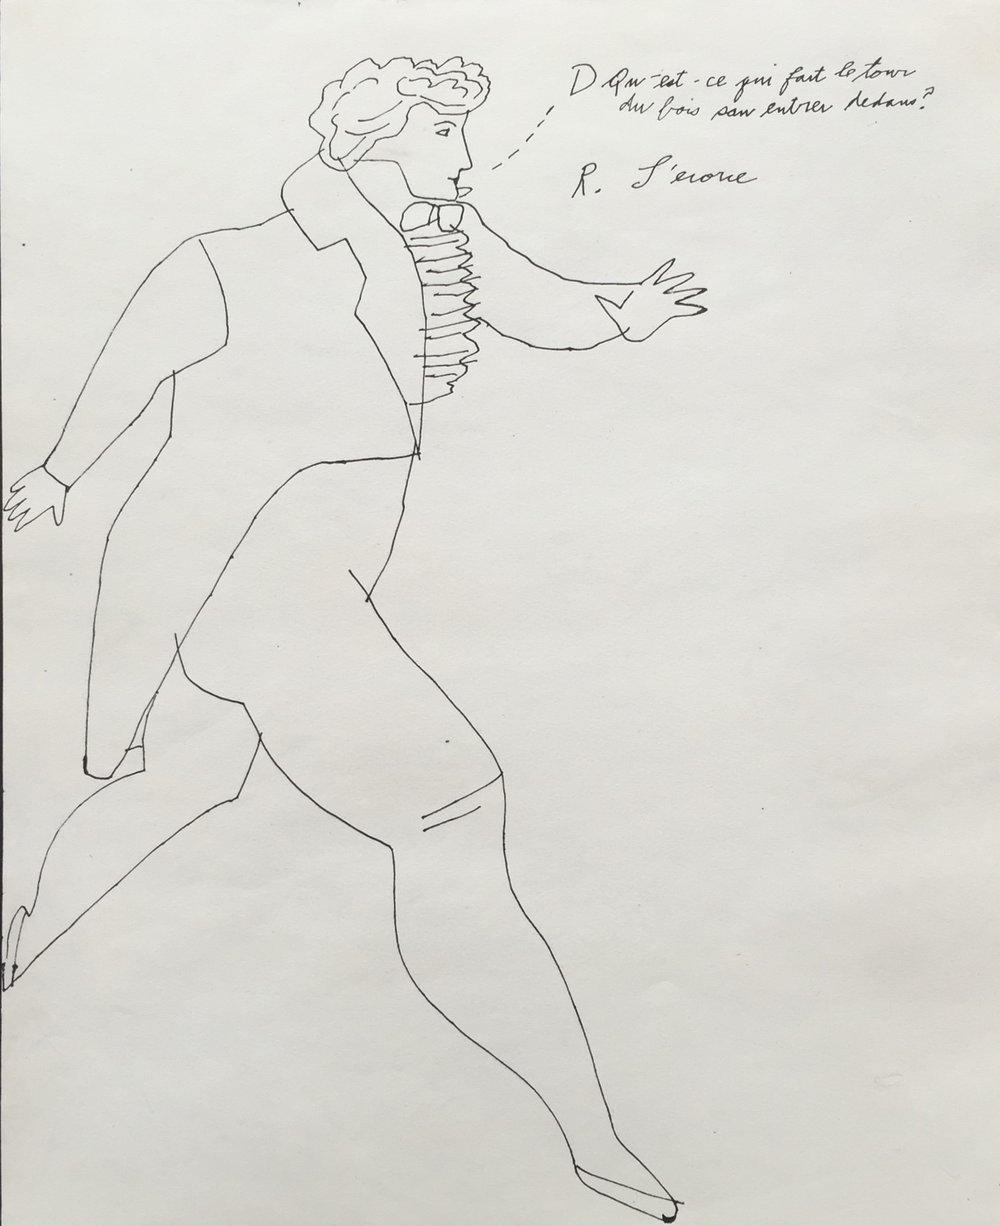 Andy Warhol - Striding Gentleman With Text - Additional Information